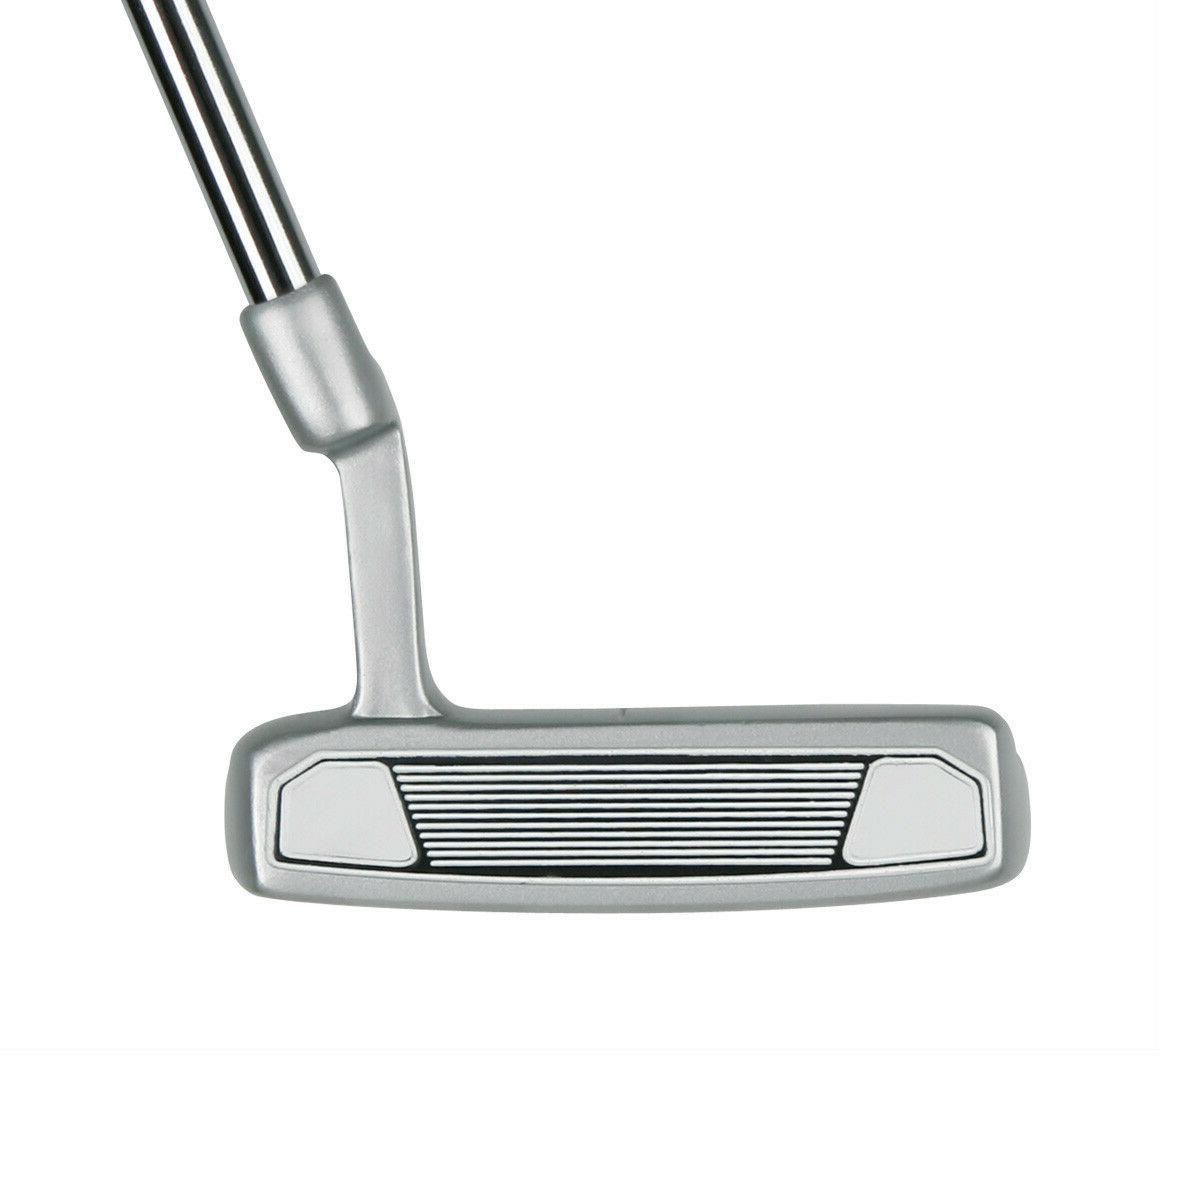 Orlimar Mallet Putter Red Silver Right NEW!